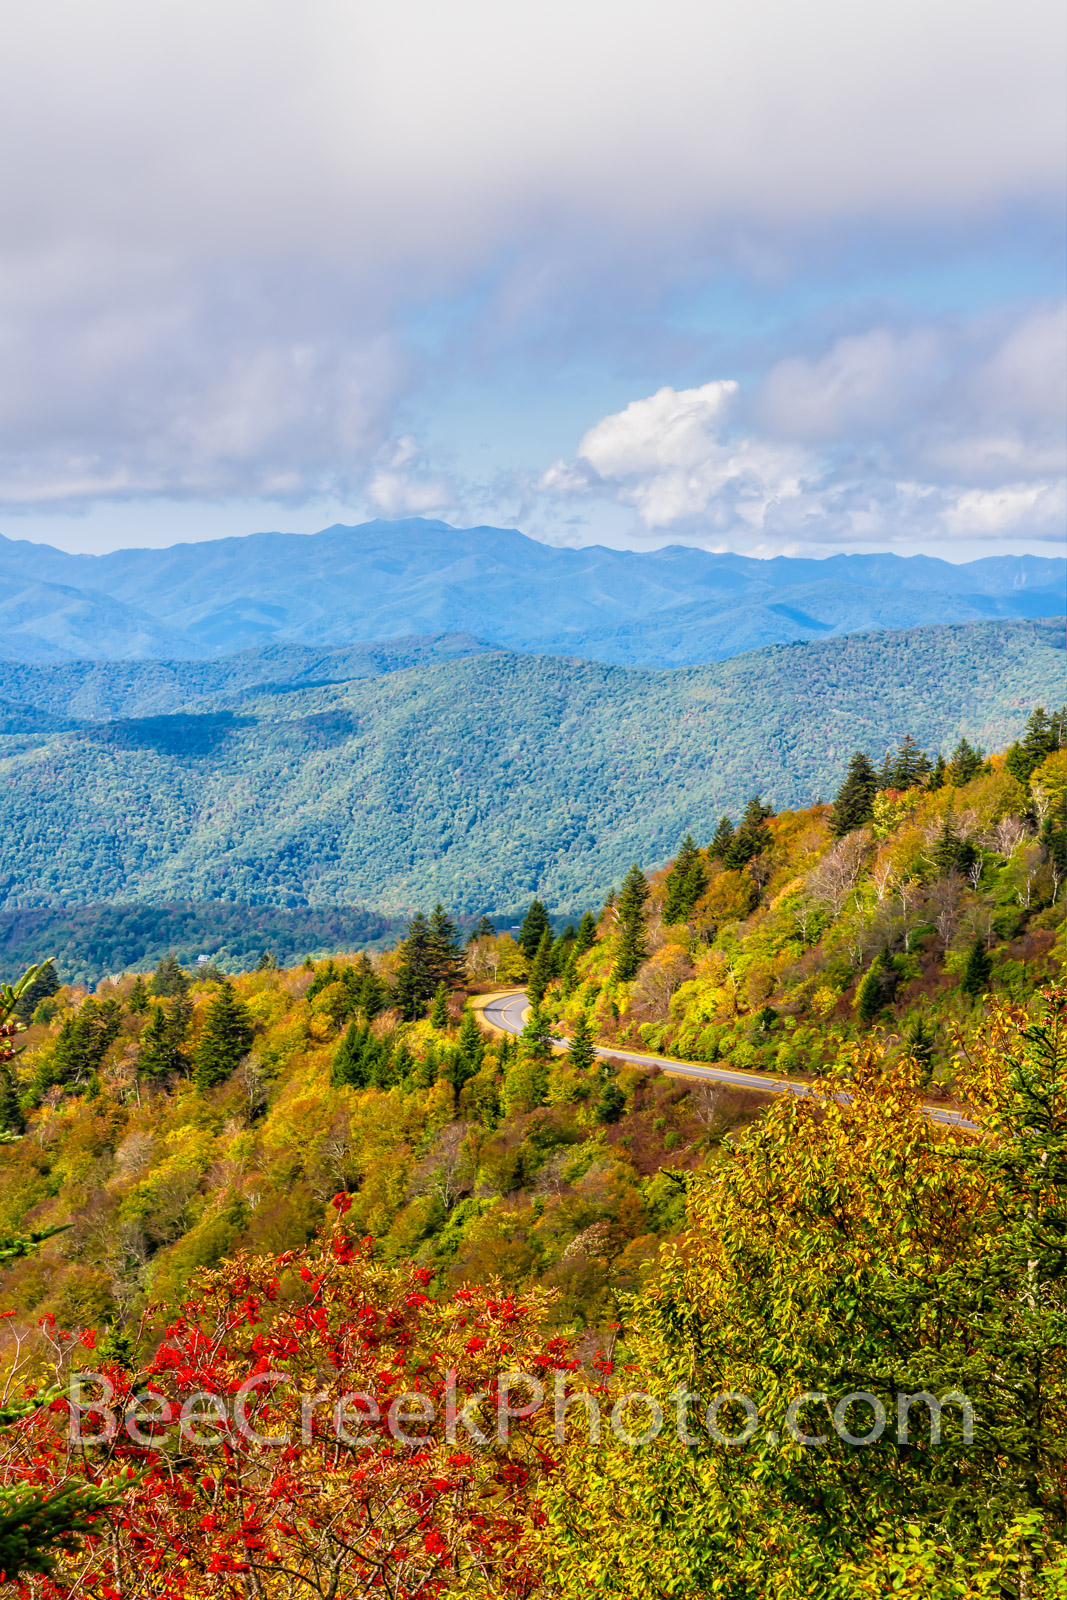 Blue Ridge Parkway, Vista, Vertical, Fall, Smoky Mountain, Scenery, scenic, Mountain, blue ridge mountains, blue ridge parkway, haze, Fall, Scenery, Pano, vista, panorama, scenic, blue ridge parkway, , photo